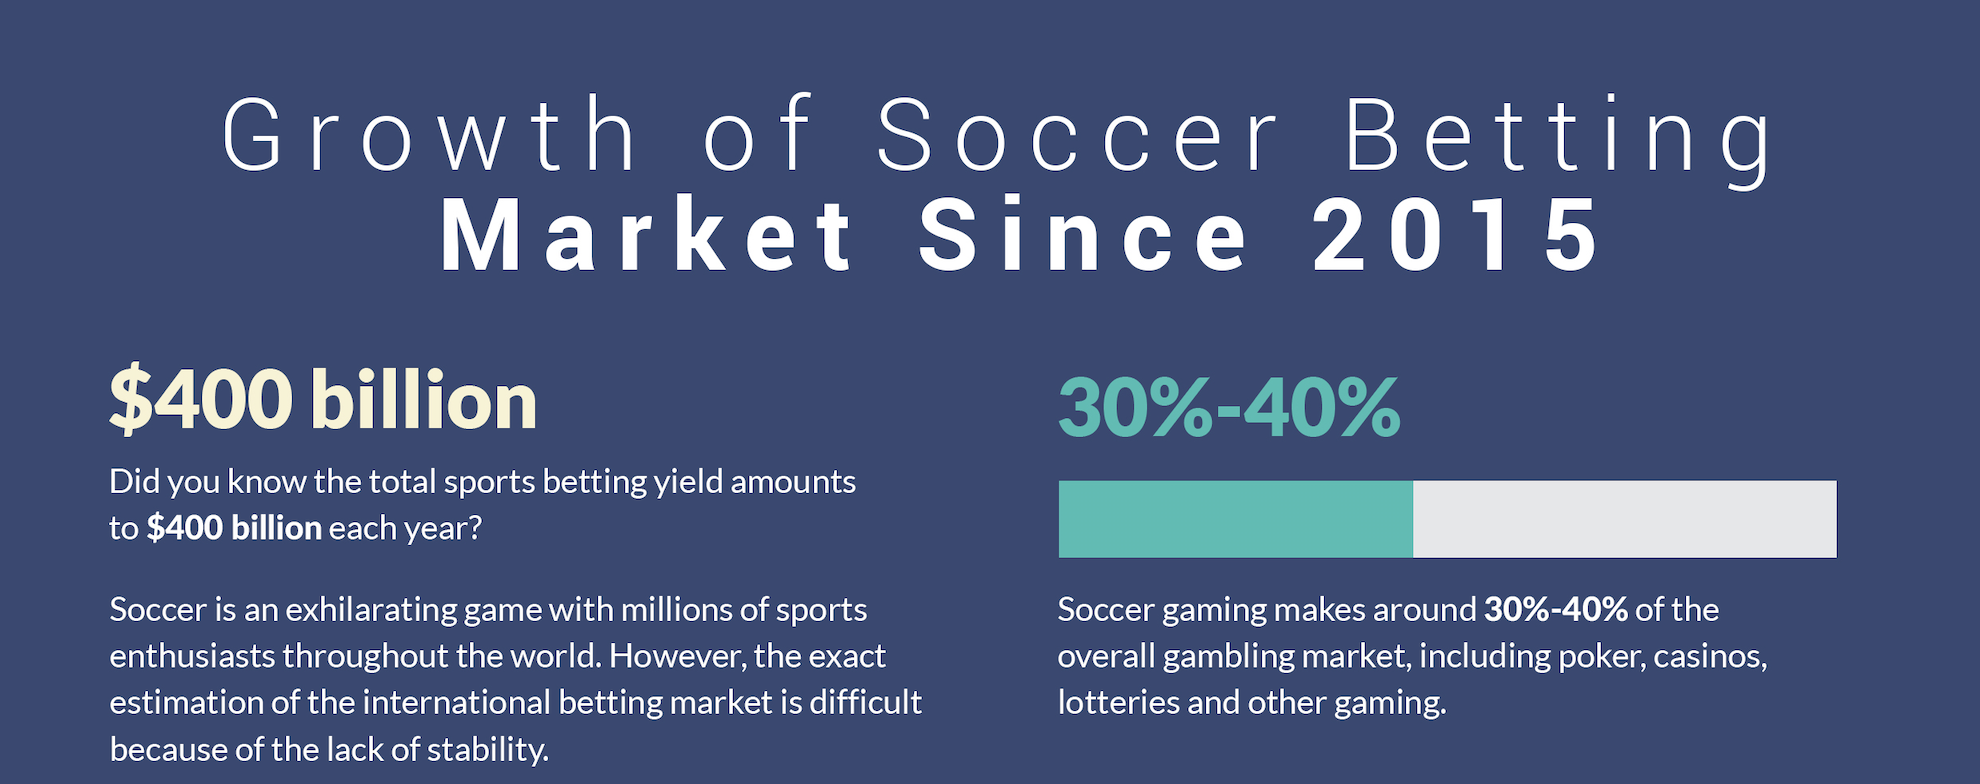 Growth of Soccer Betting Market Since 2015